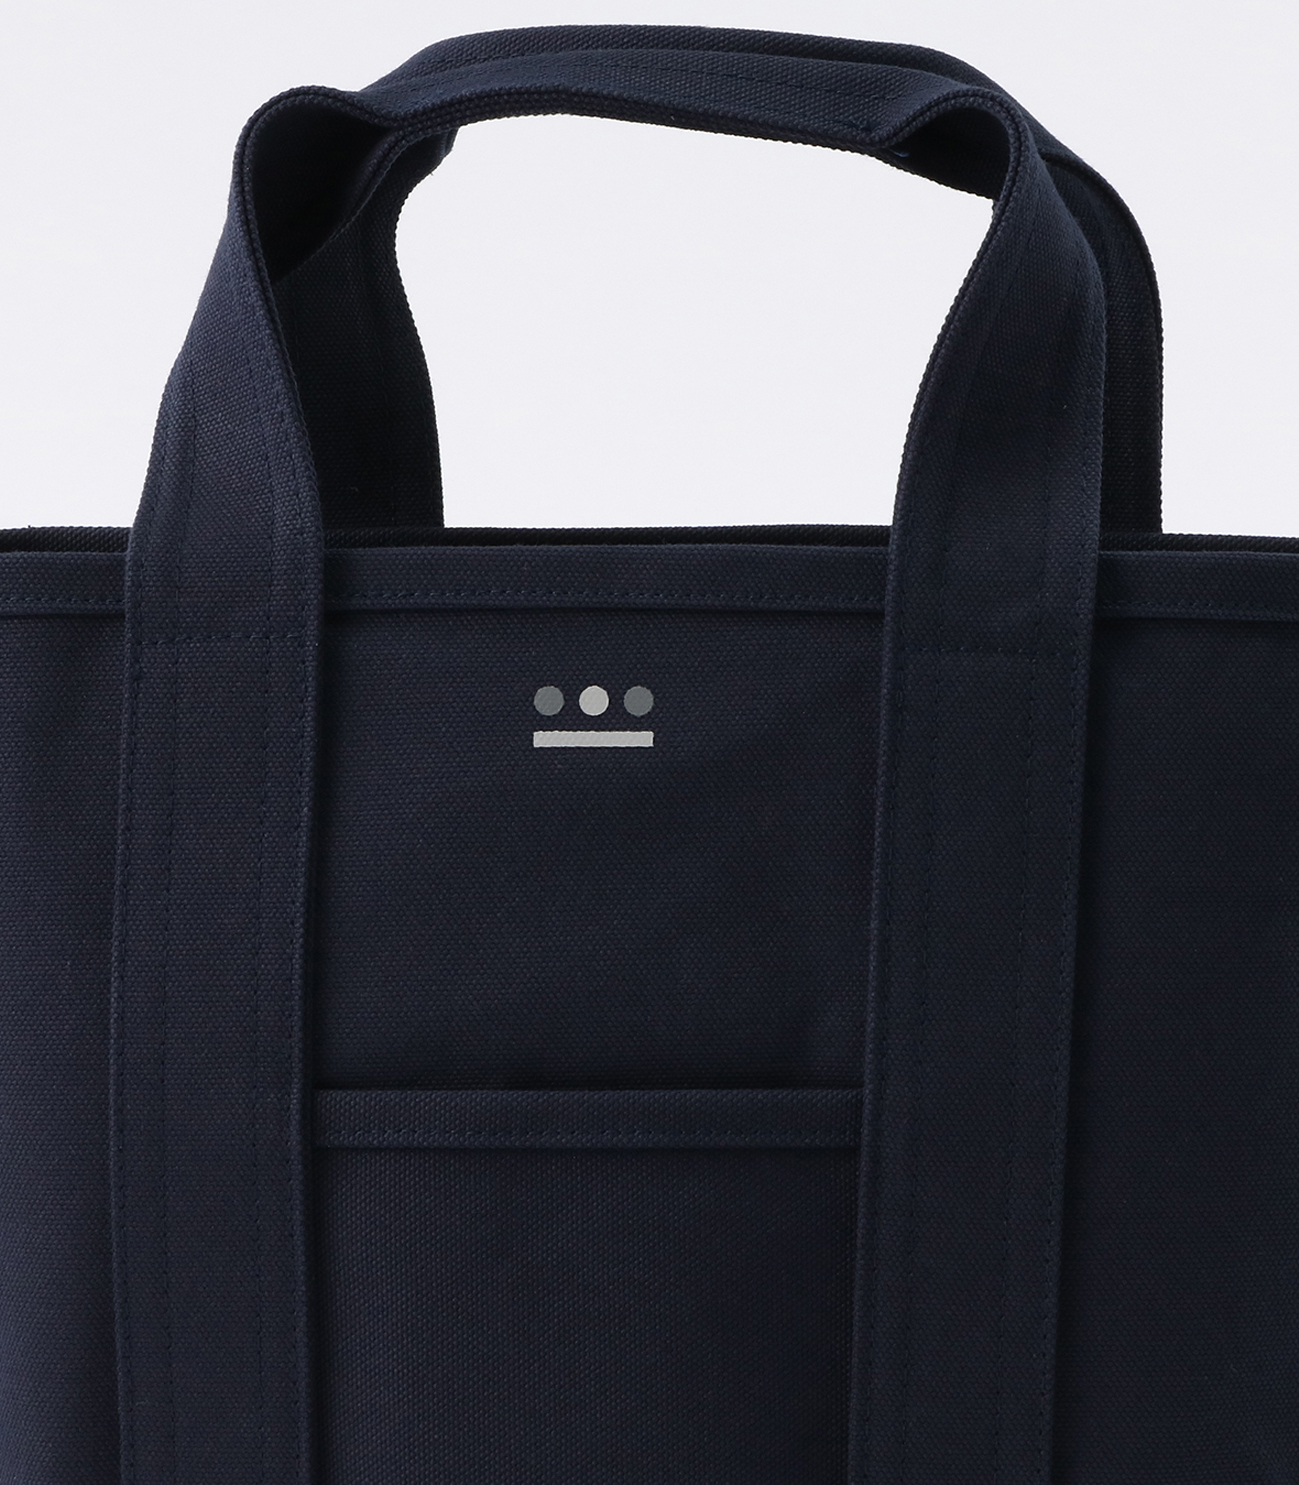 mini tote bag 詳細画像 navy 4